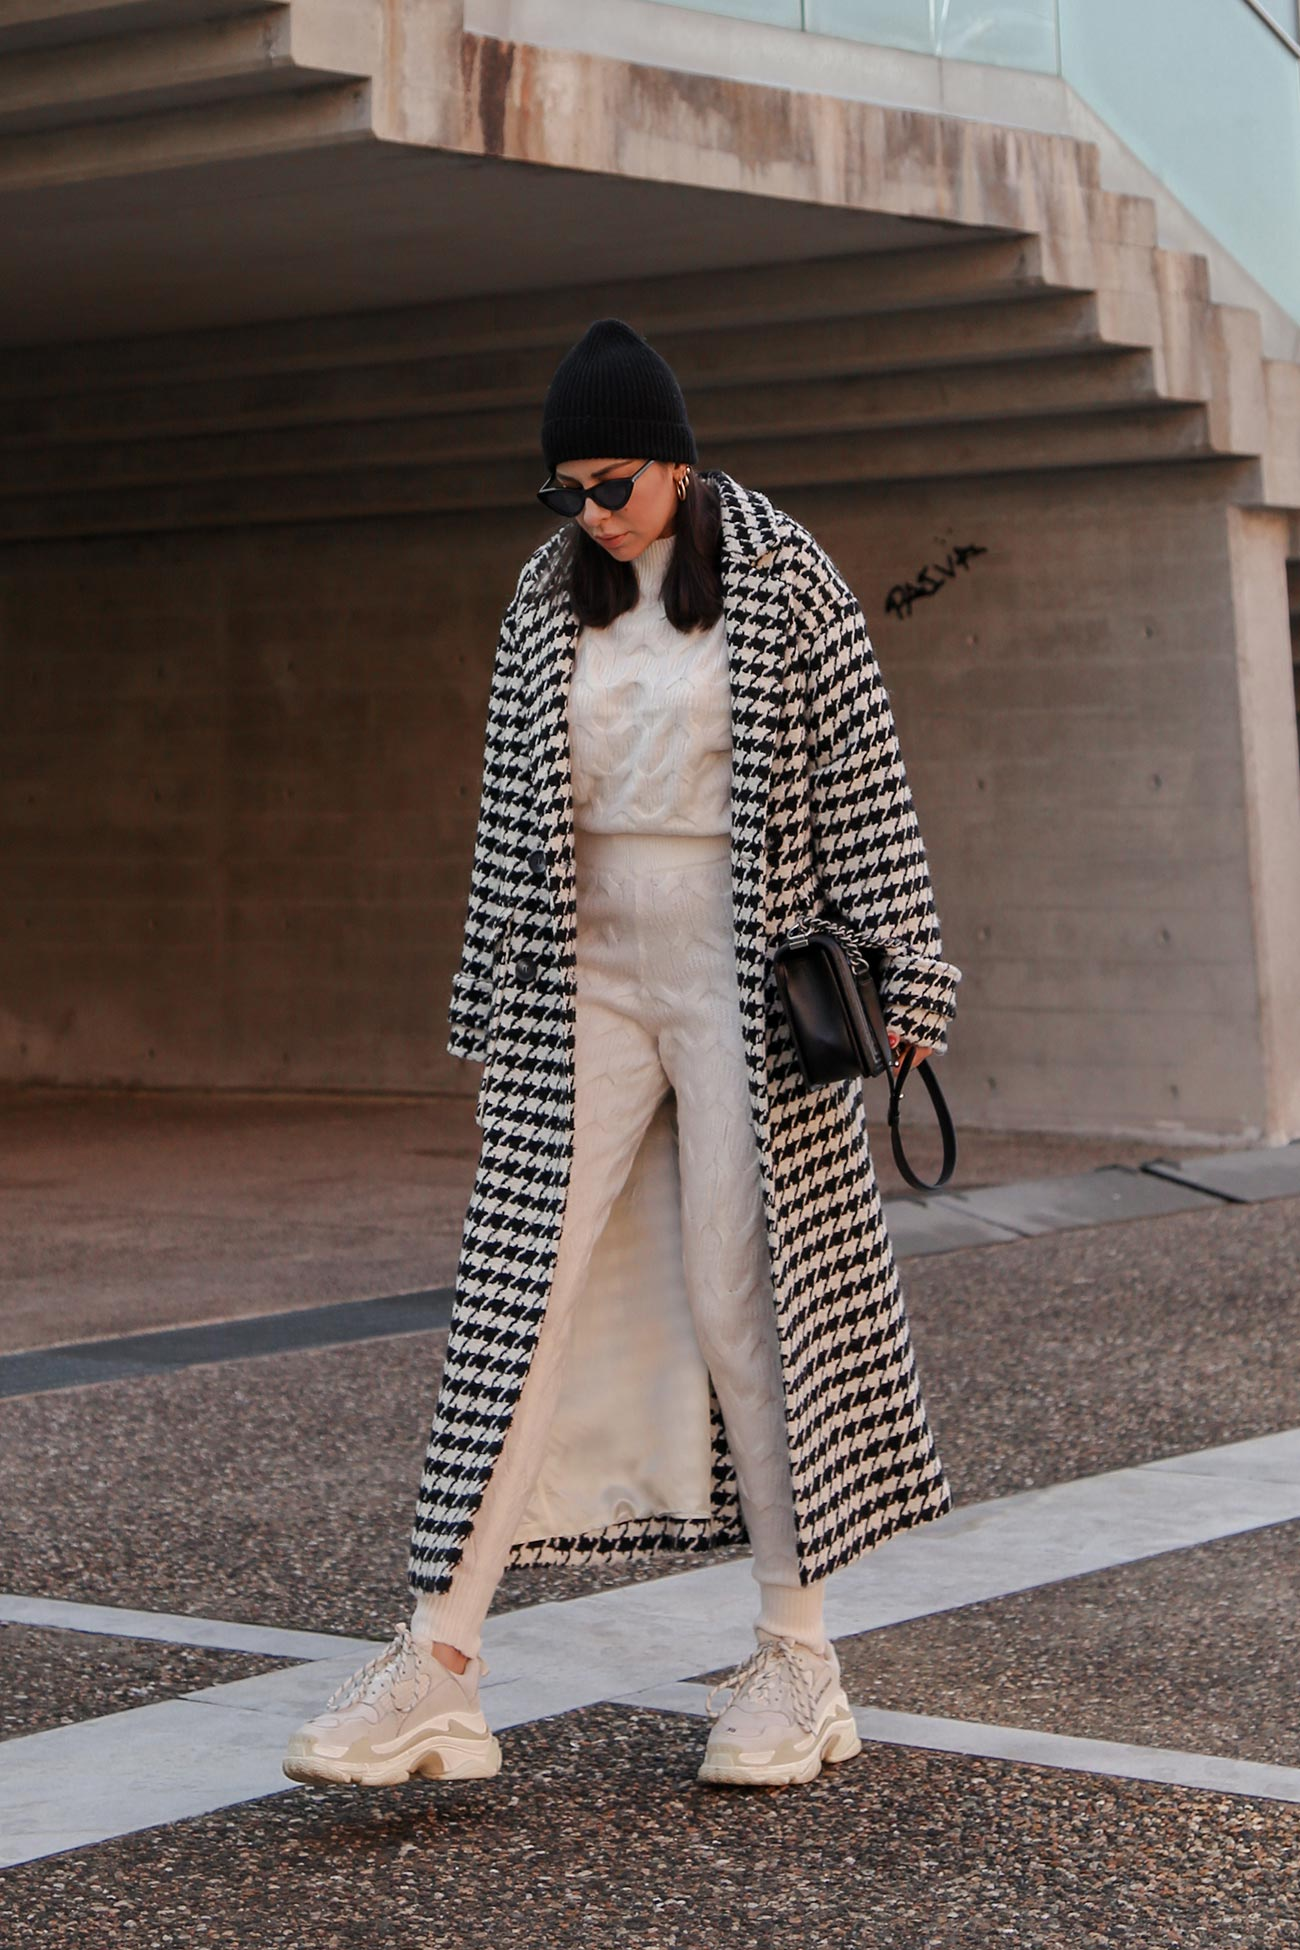 Stella Asteria wearing knit co-ord with white Balenciaga Triple S and longline black and white houndstooth coat